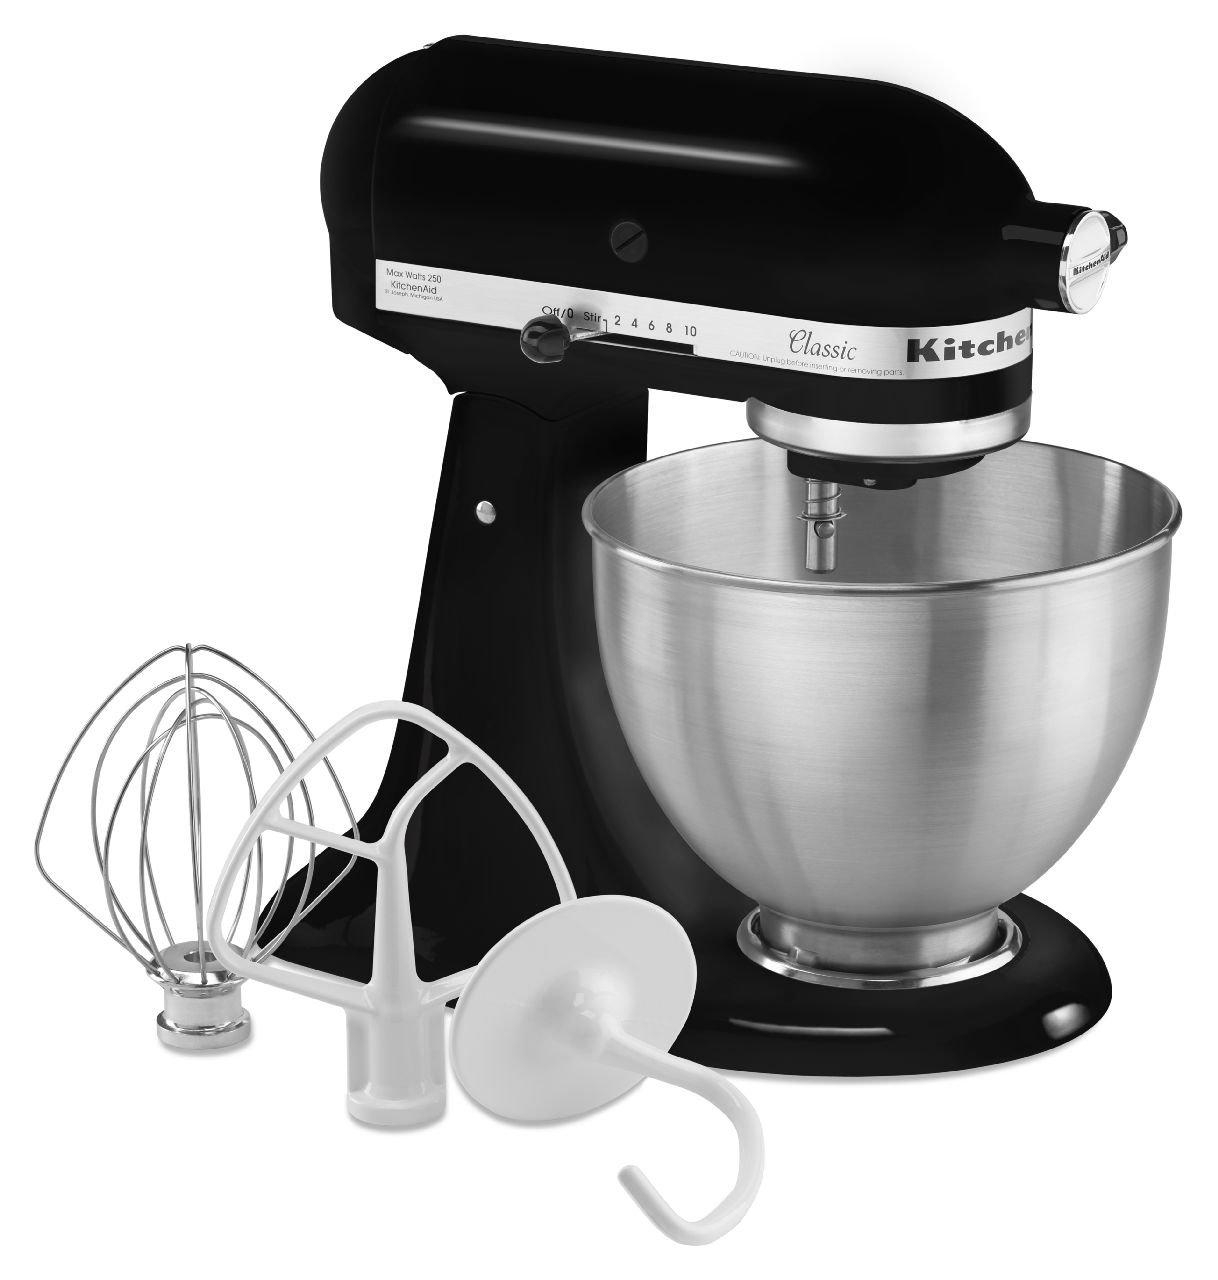 galleon kitchenaid k45ssob 4 5 quart classic series stand mixer